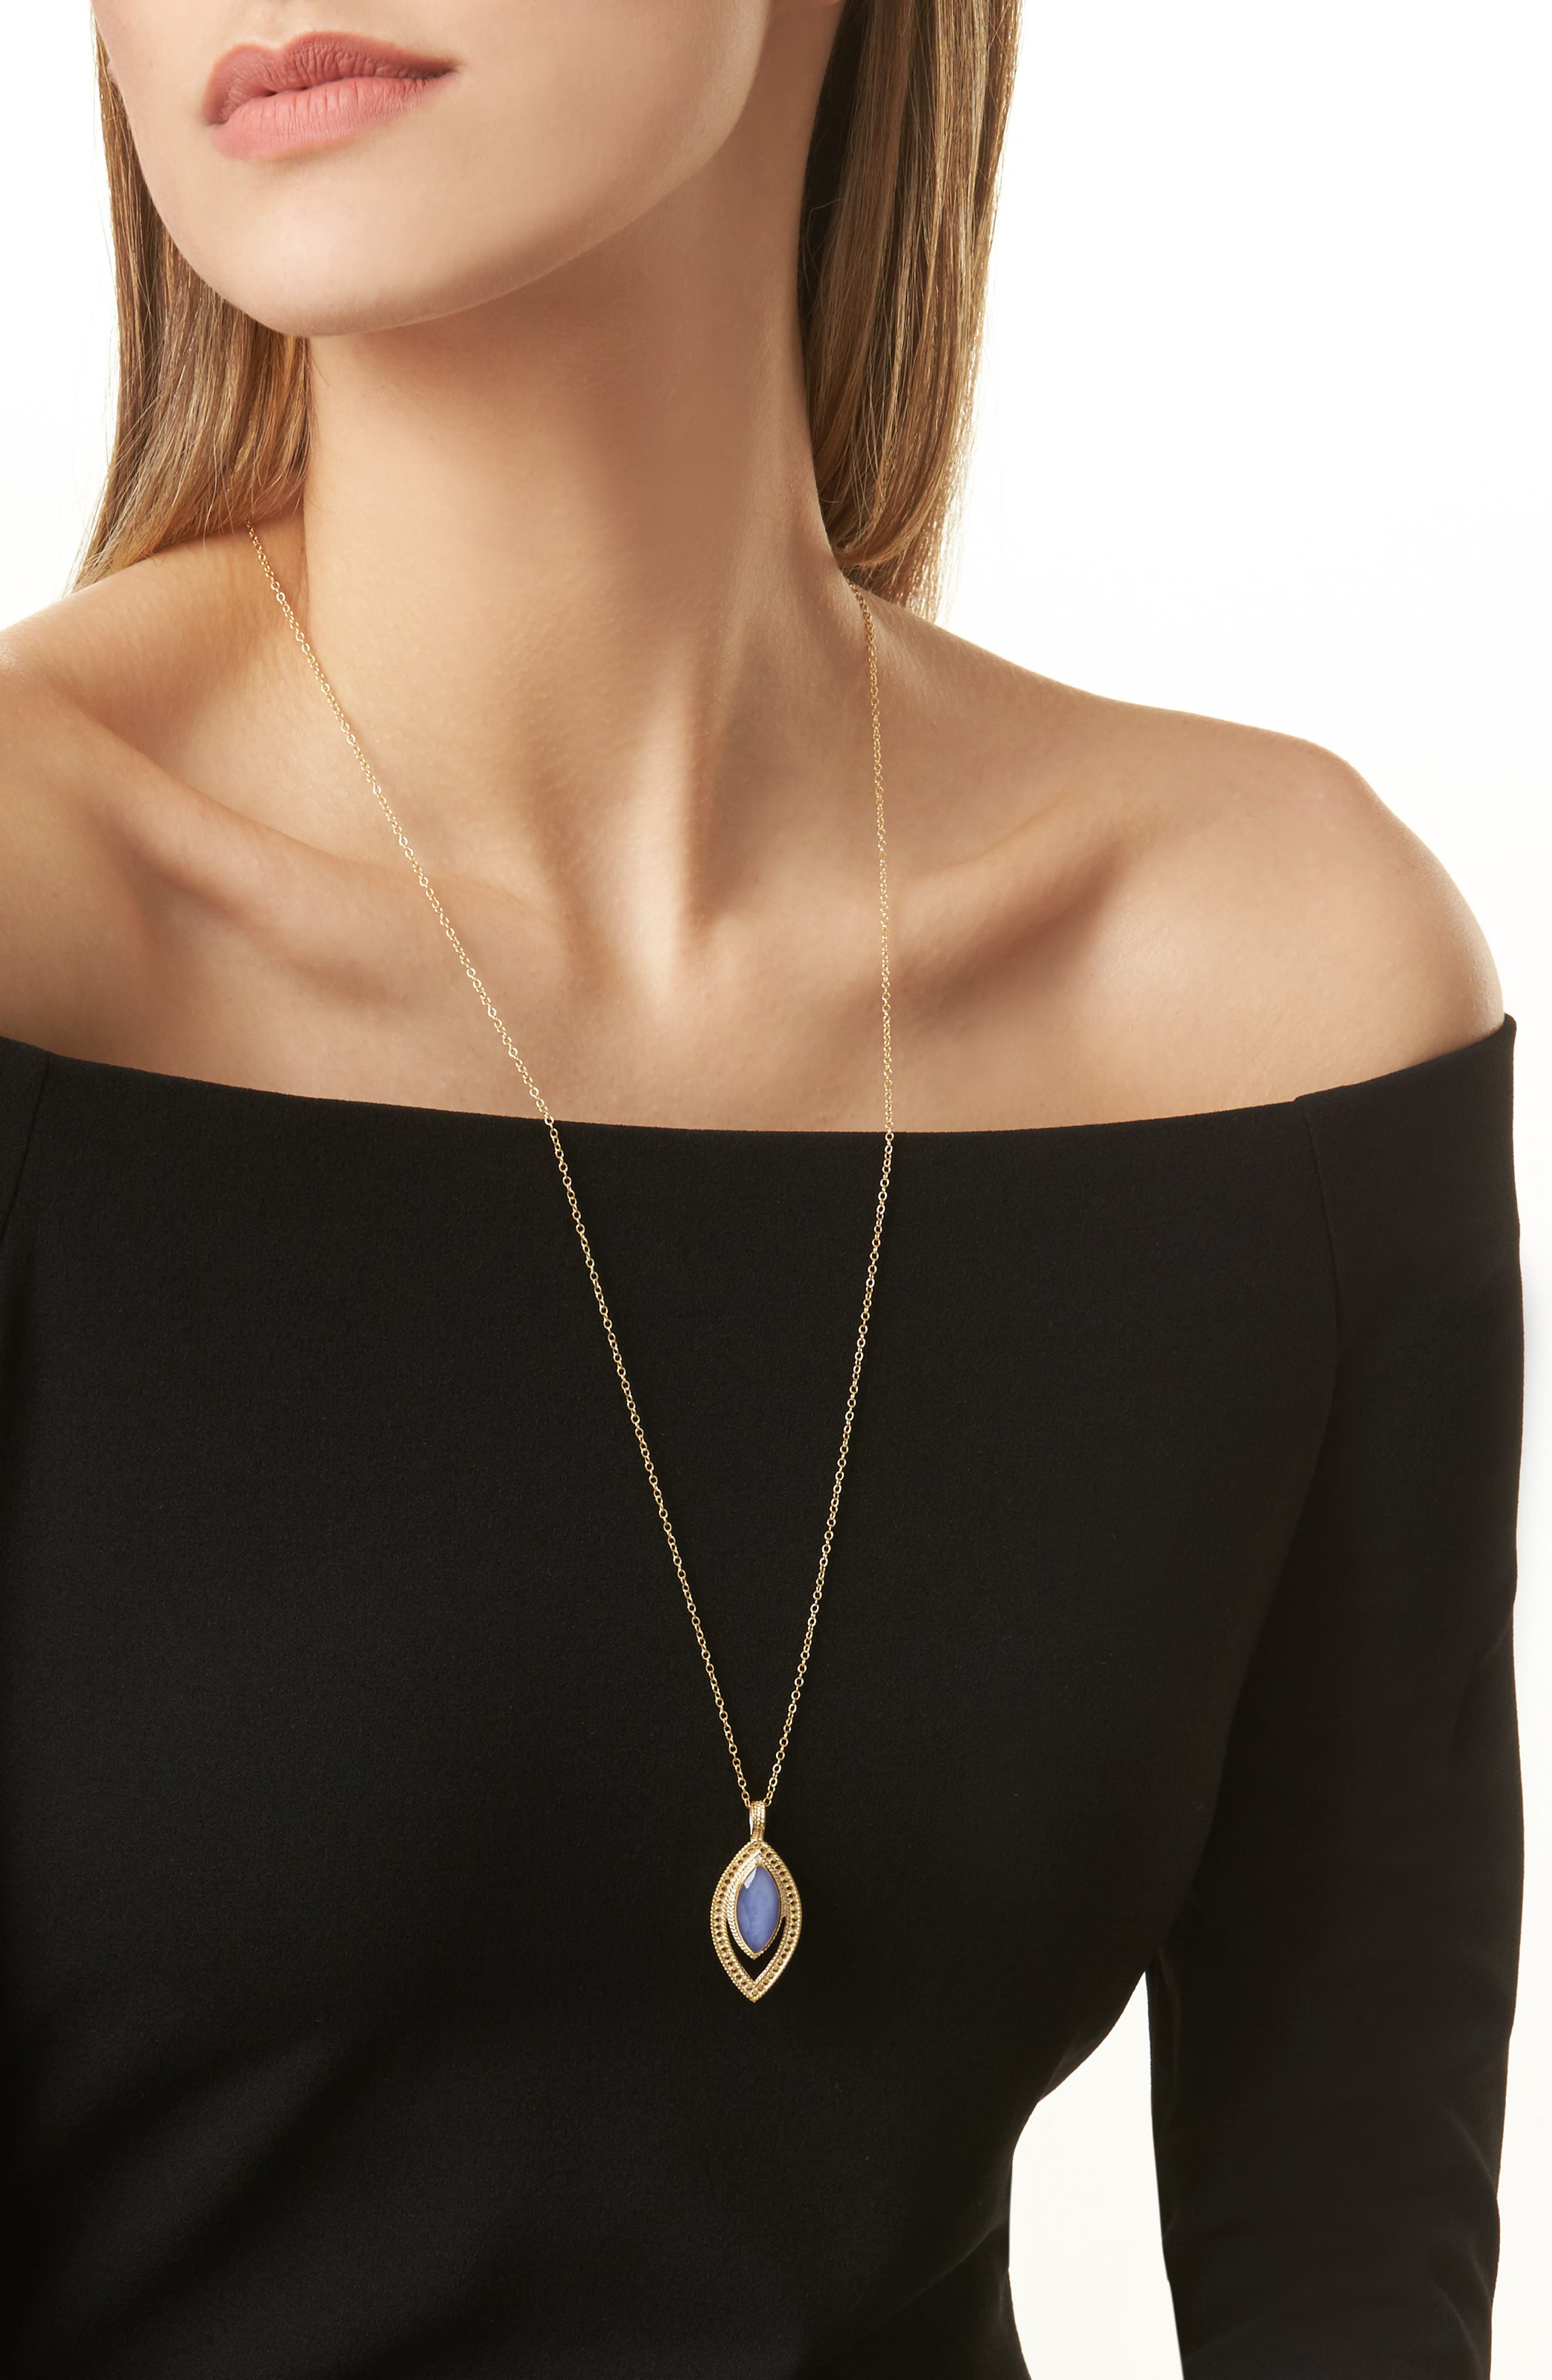 Chalcedony Doublet Pendant Necklace,                             Alternate thumbnail 2, color,                             Gold/ Blue Chalcedony